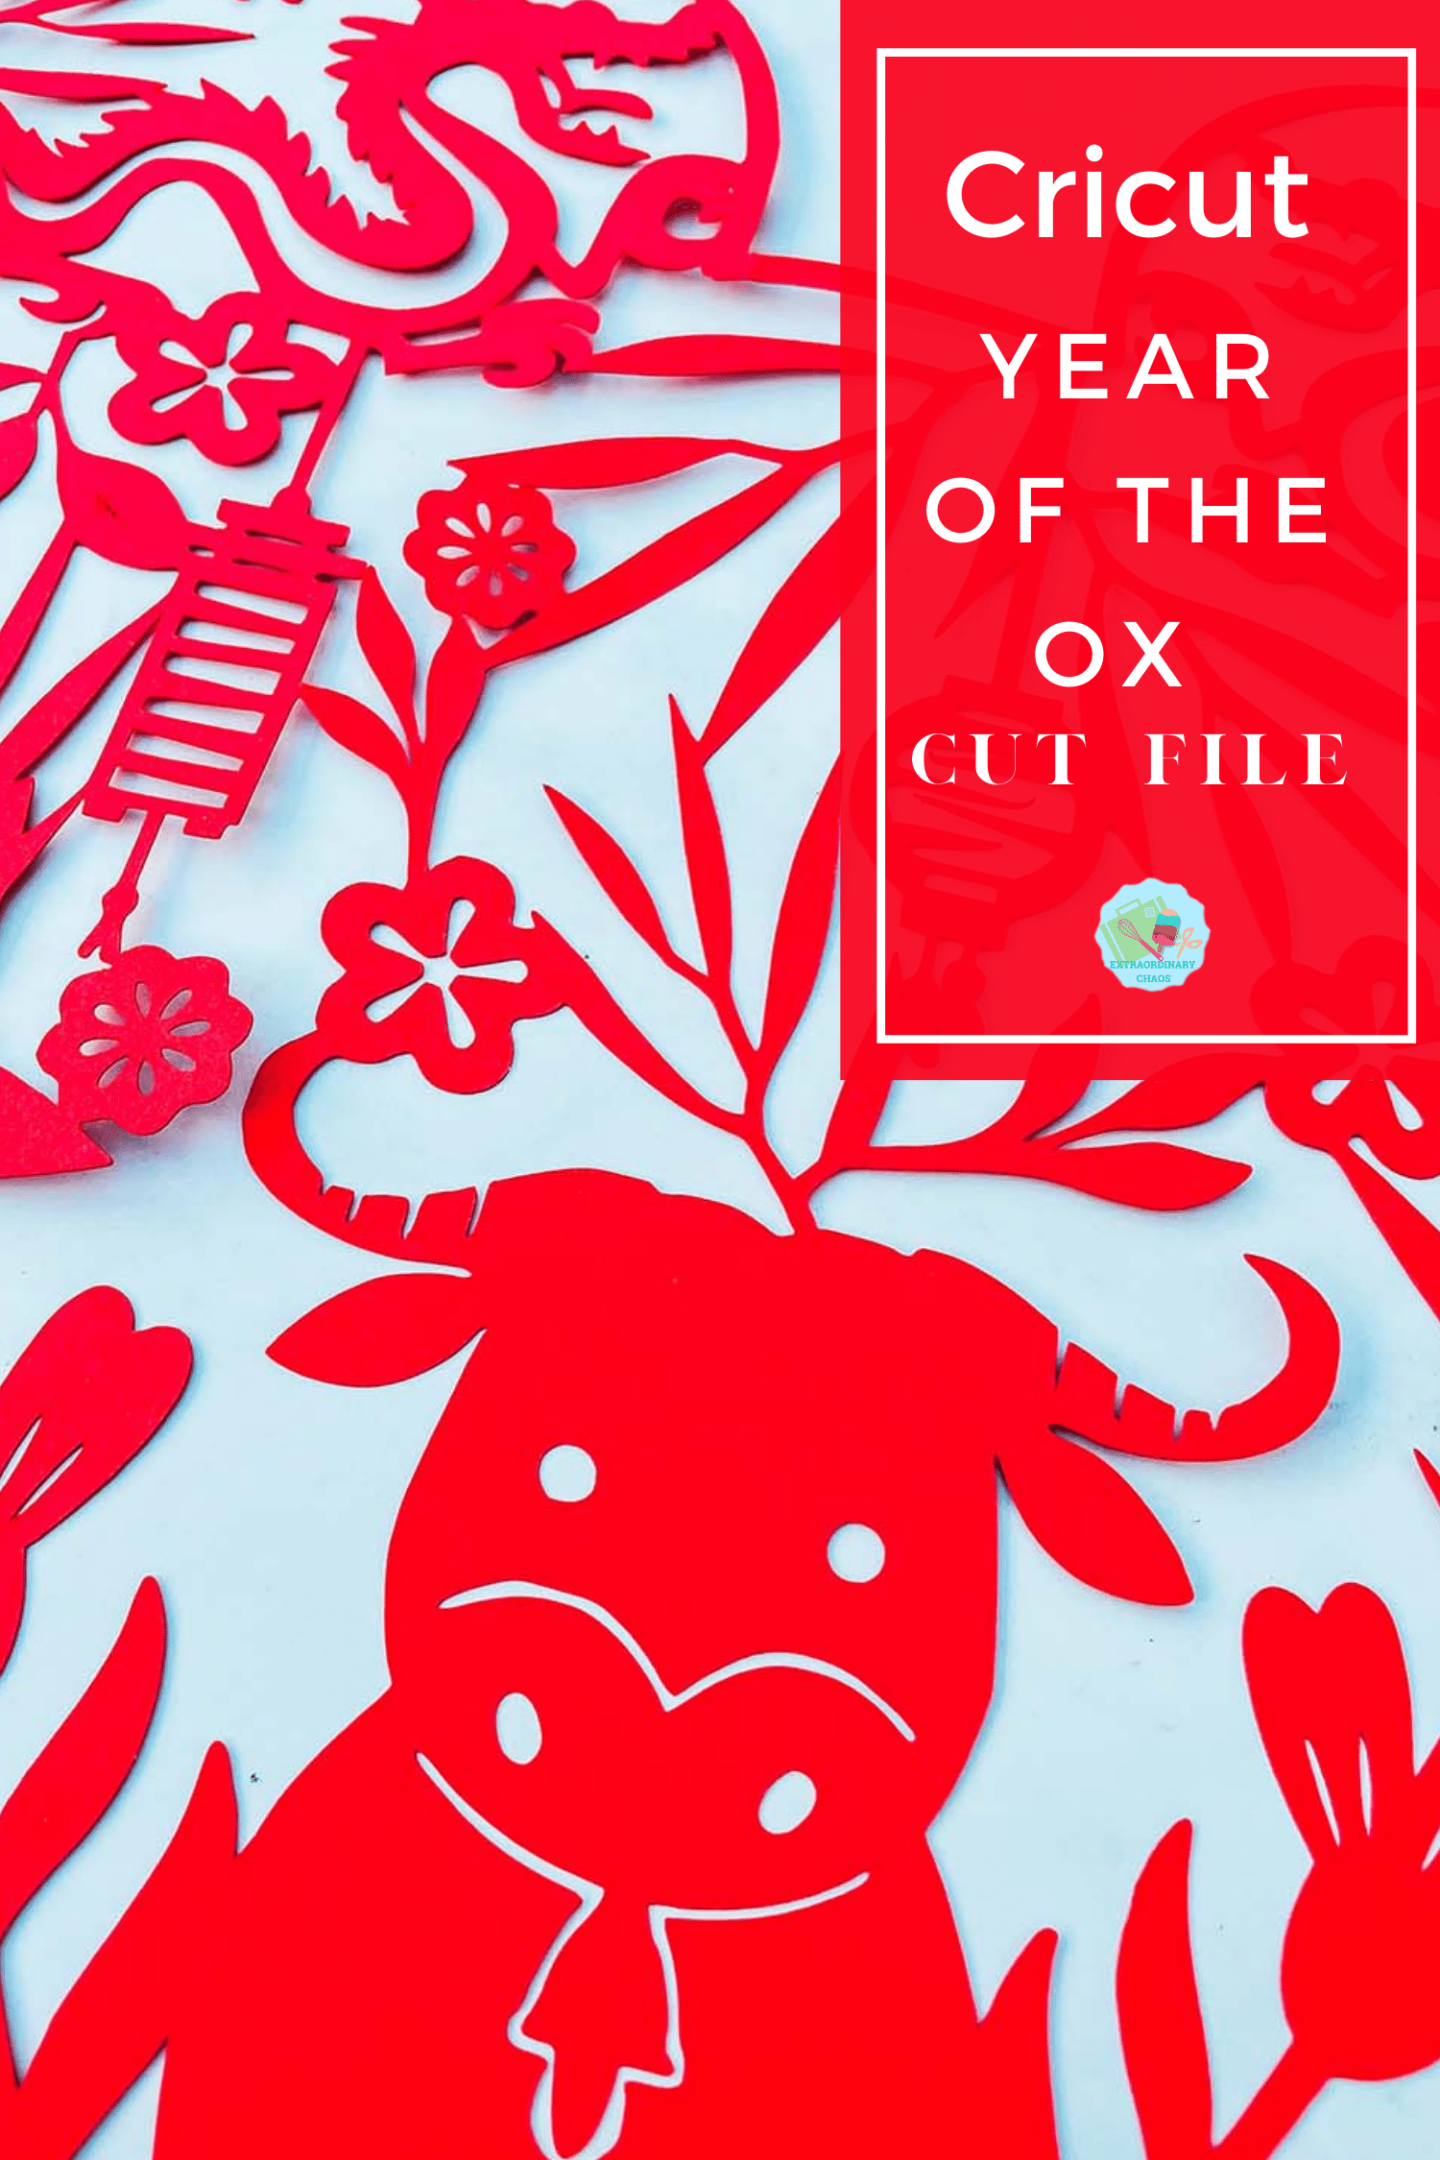 Free Downloadable Mickey Chinese New Year Cut File For Year Of The Ox